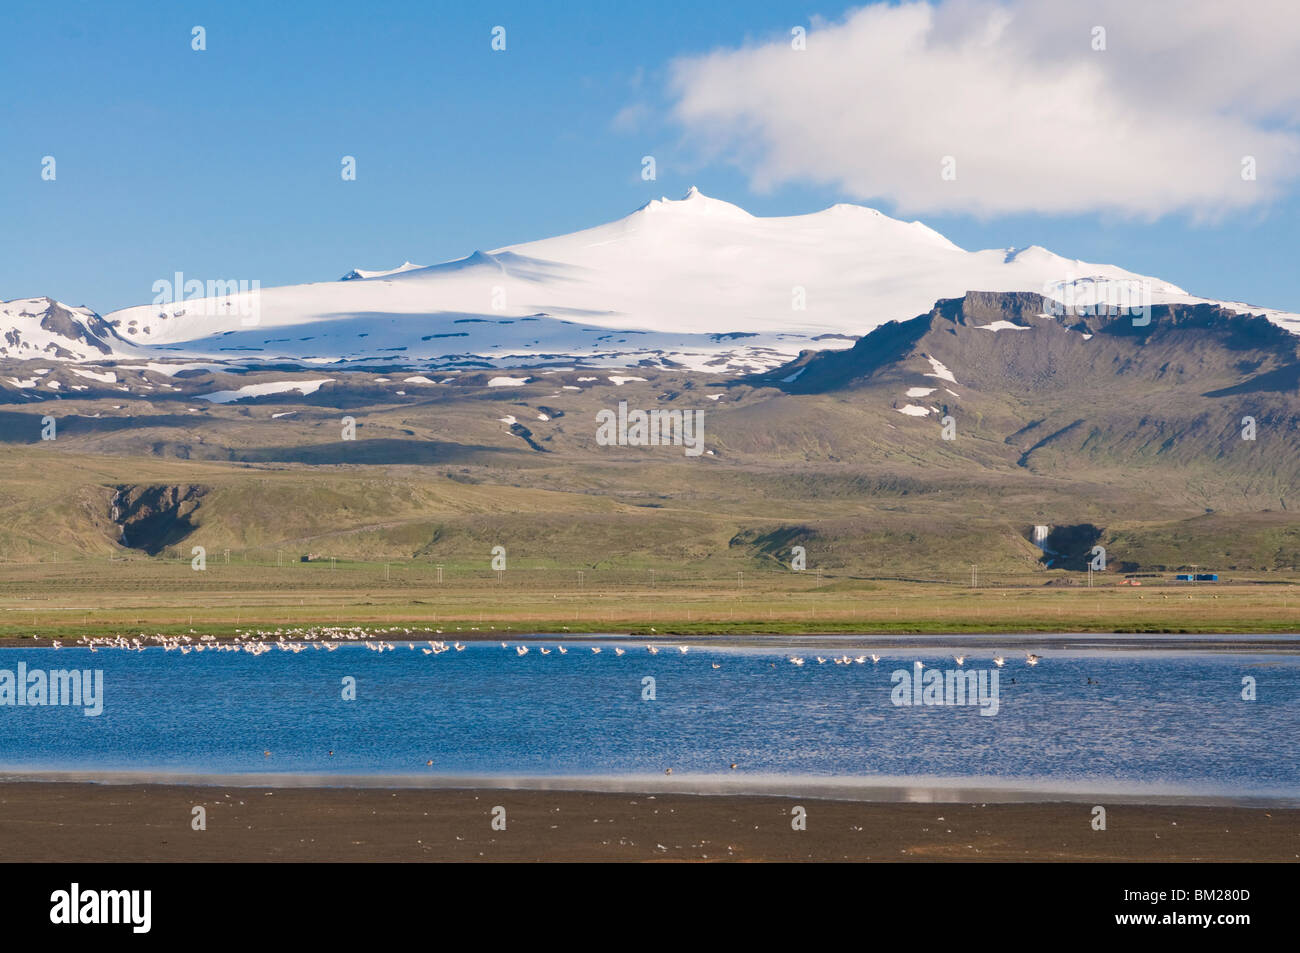 Mountain landscape with body of water and flock of birds, Snaefellsjokull National Park, Iceland, Polar Regions - Stock Image